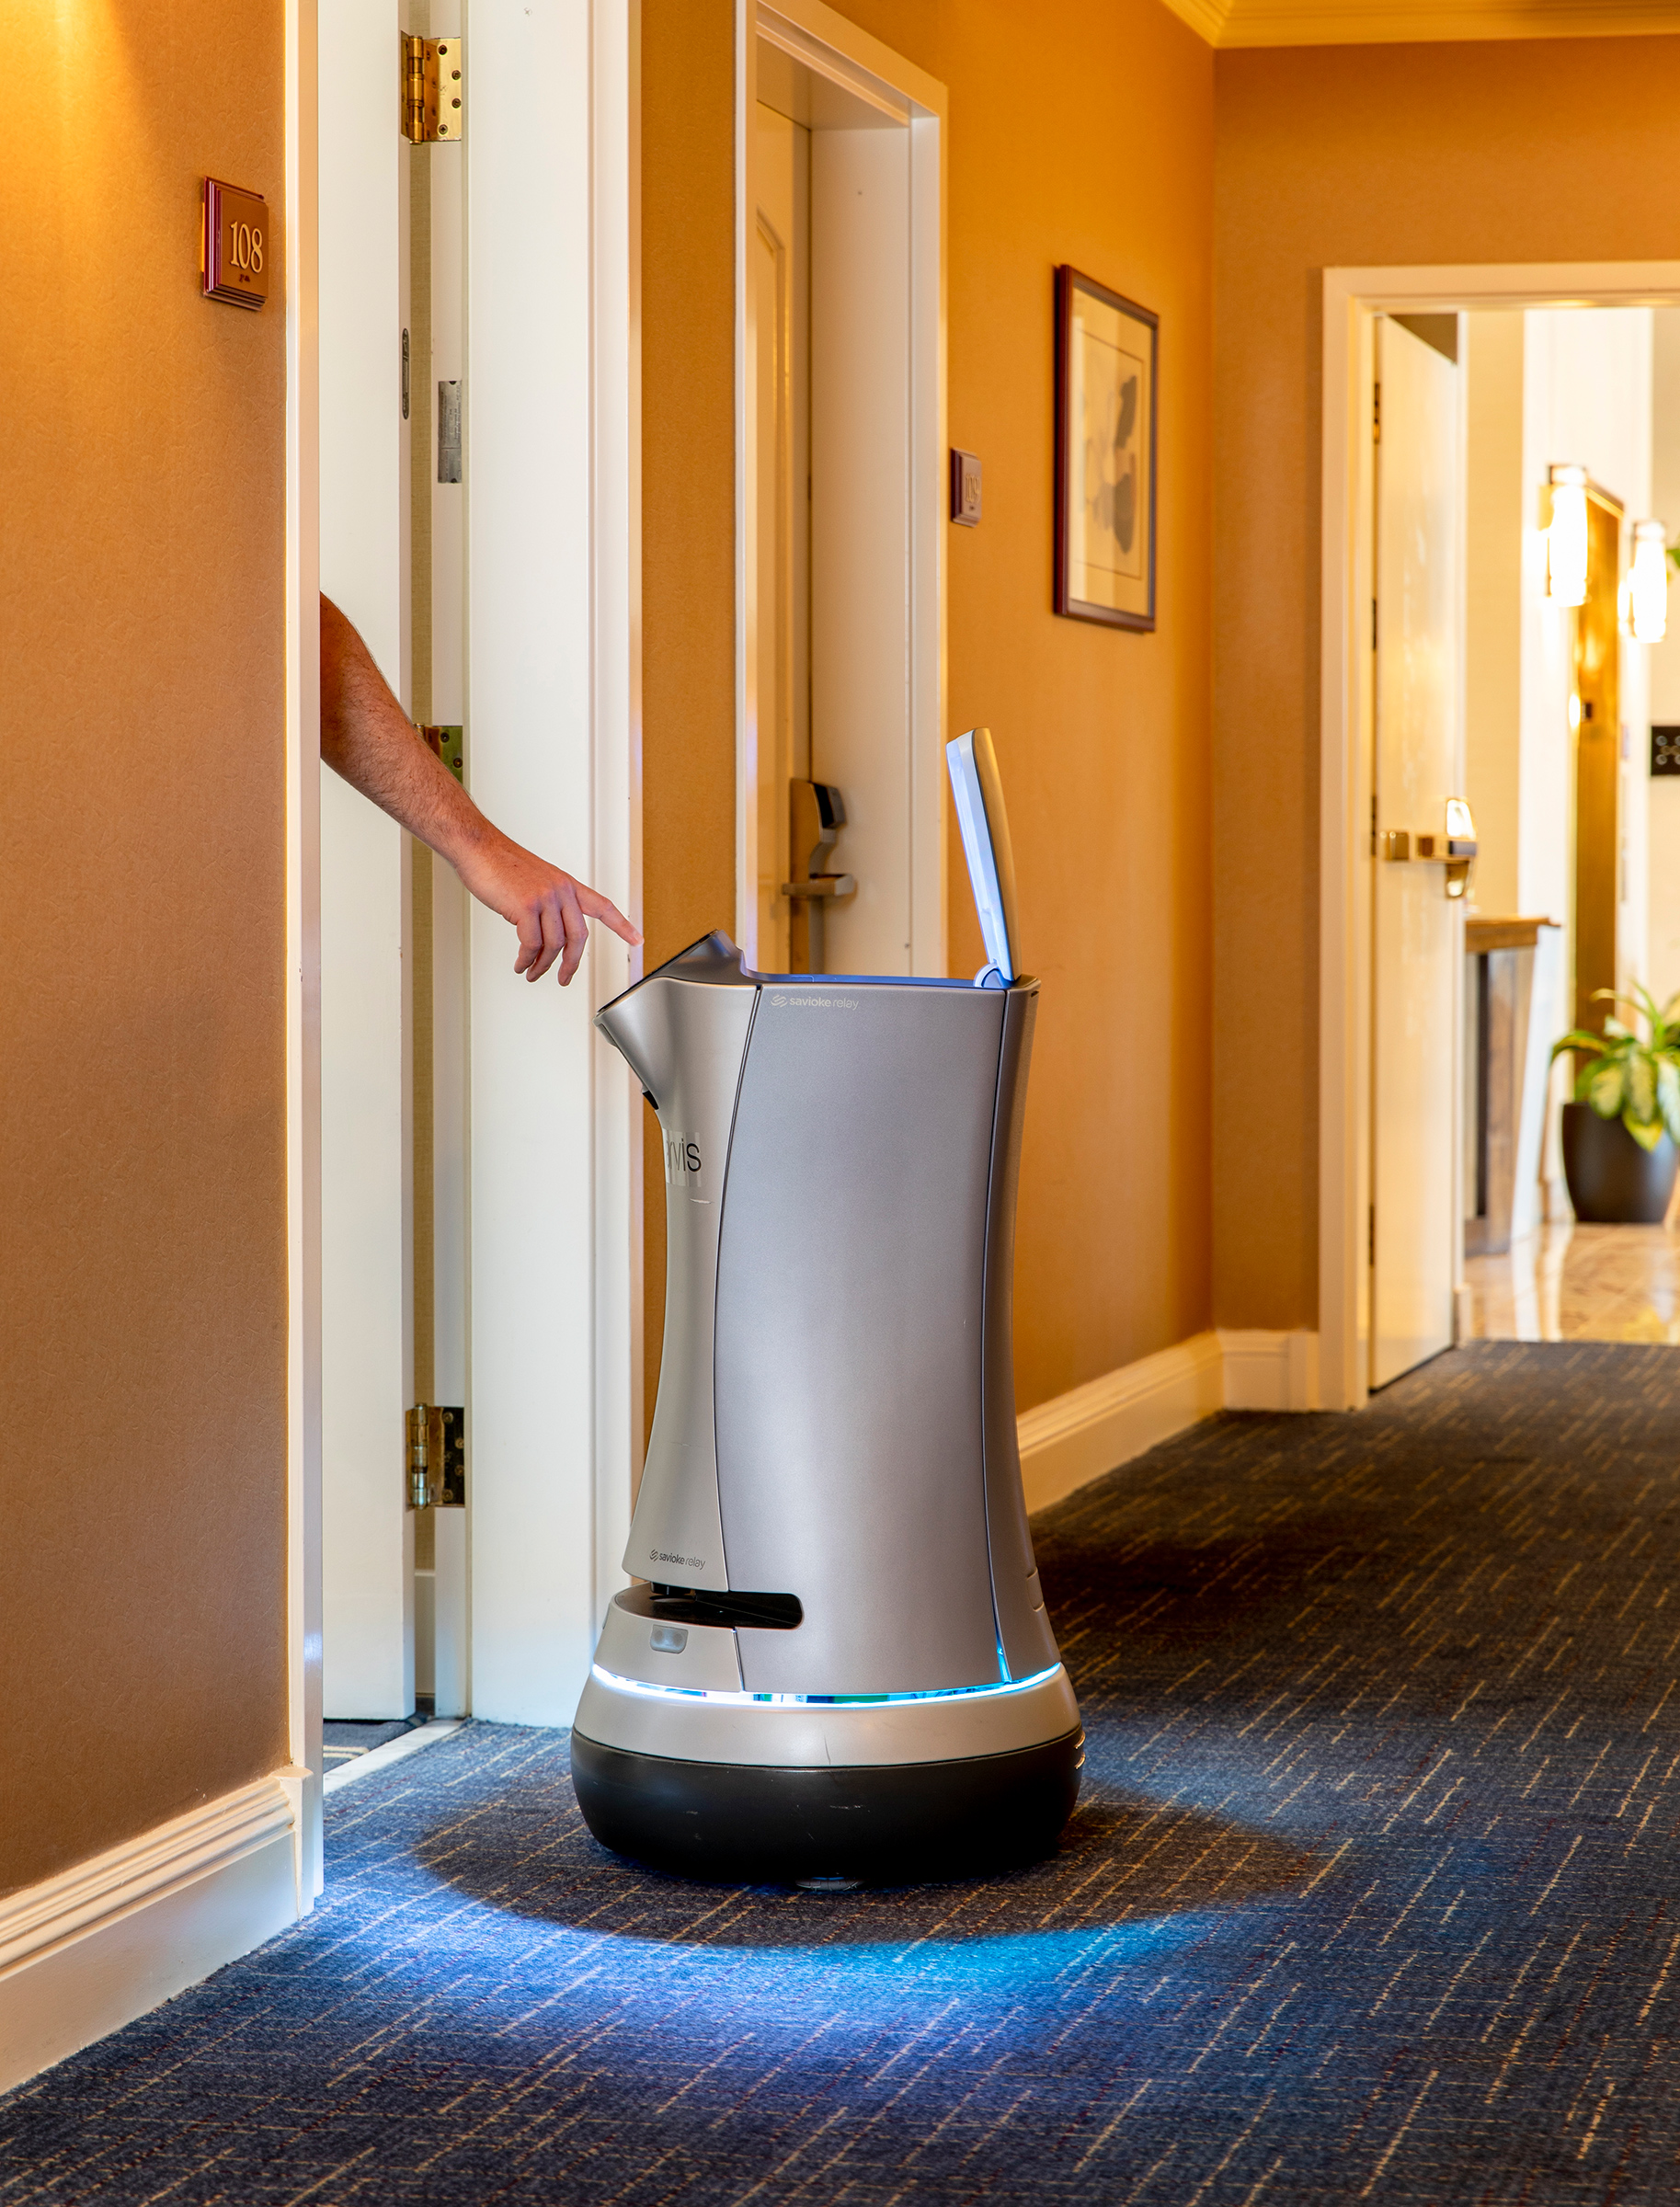 Jarvis the robotic butler on duty at the Grand Hotel in Sunnyvale, Calif., on July 30